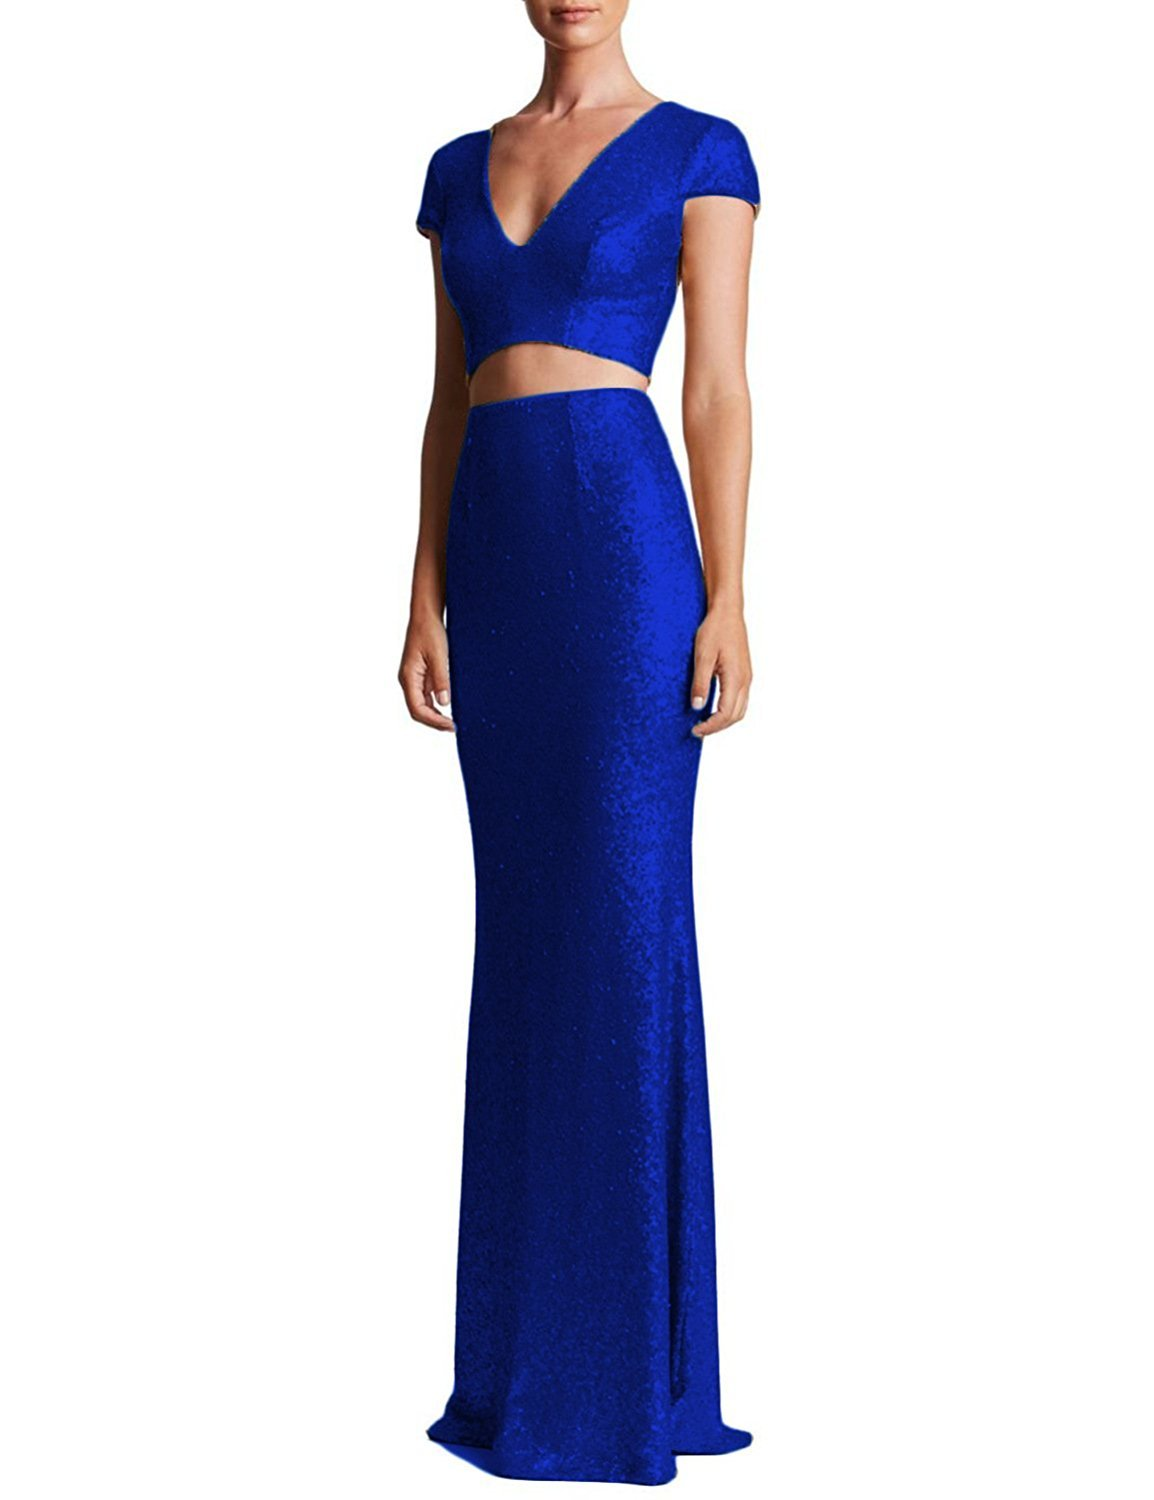 Women's Cheap Sequins Mermaid Evening Two Pieces Prom Dress Formal Party Gowns